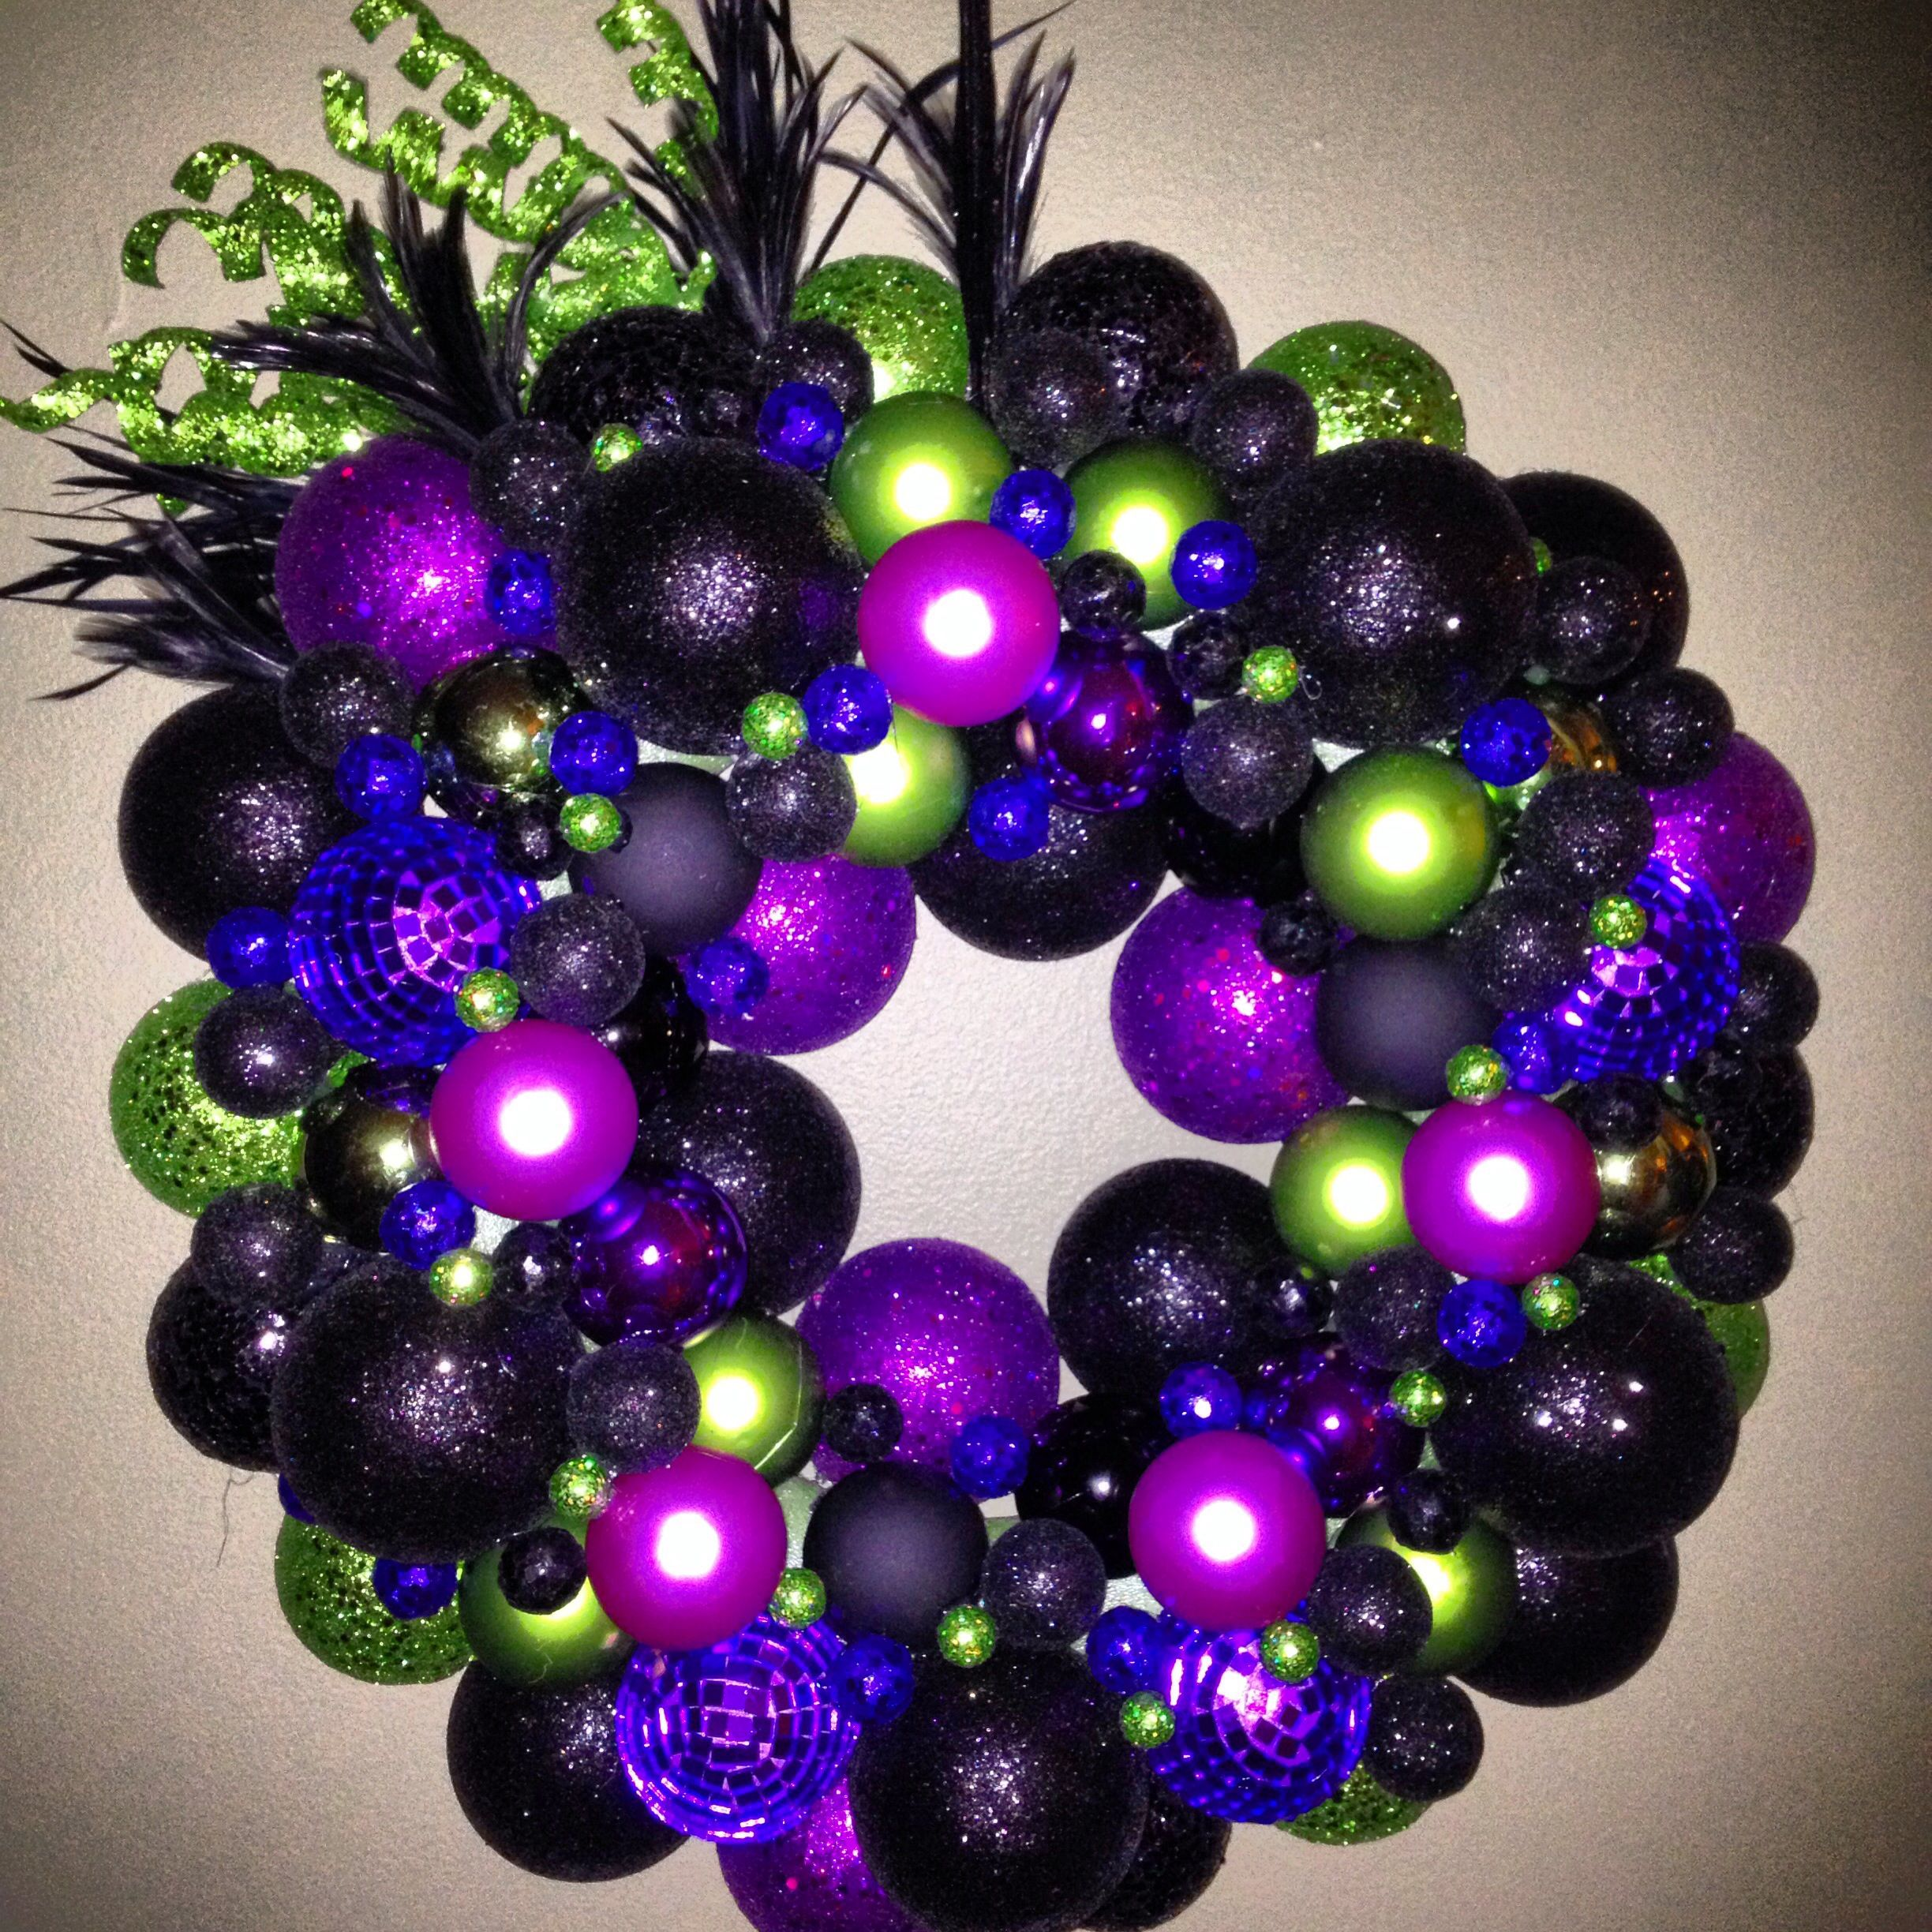 Halloween Themed Ball Ornament Wreath Witchy Colors Ornament Wreath Ball Ornaments Ornaments